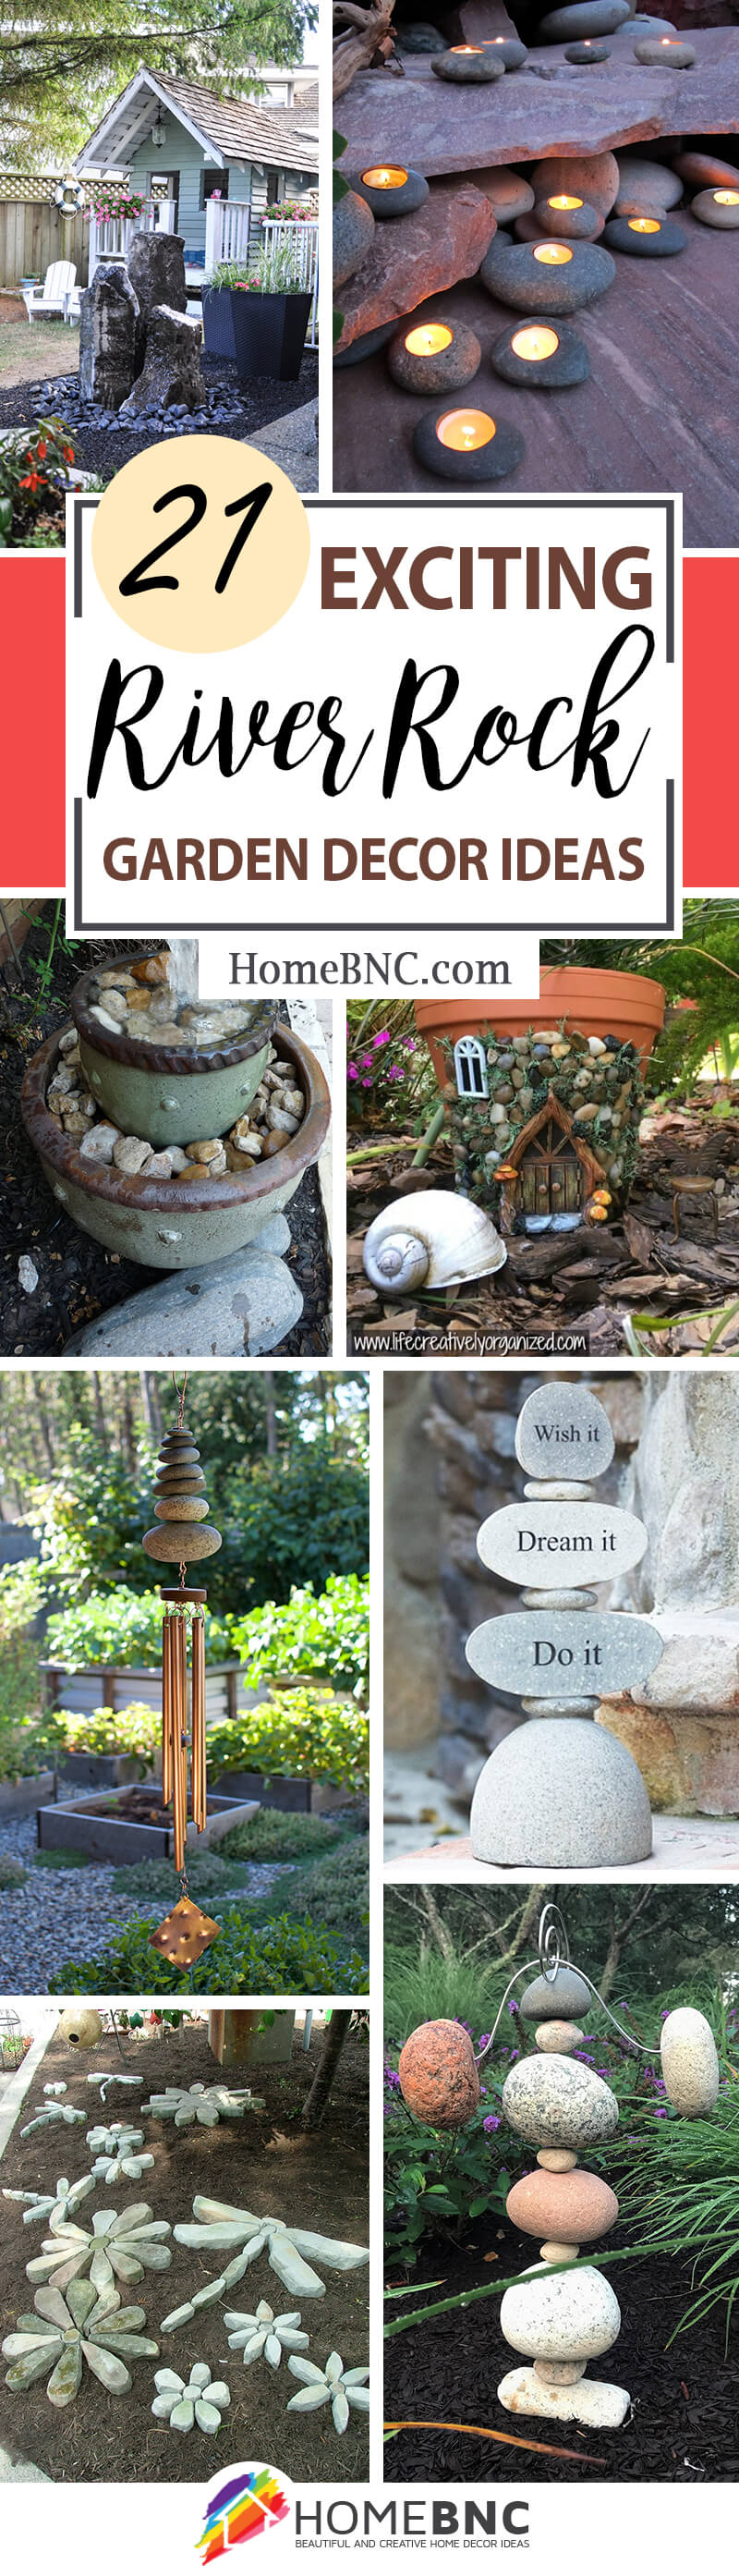 21 Best River Rock and Stone Garden Decorating Ideas for 2020 on Rock Decorating Ideas  id=41412